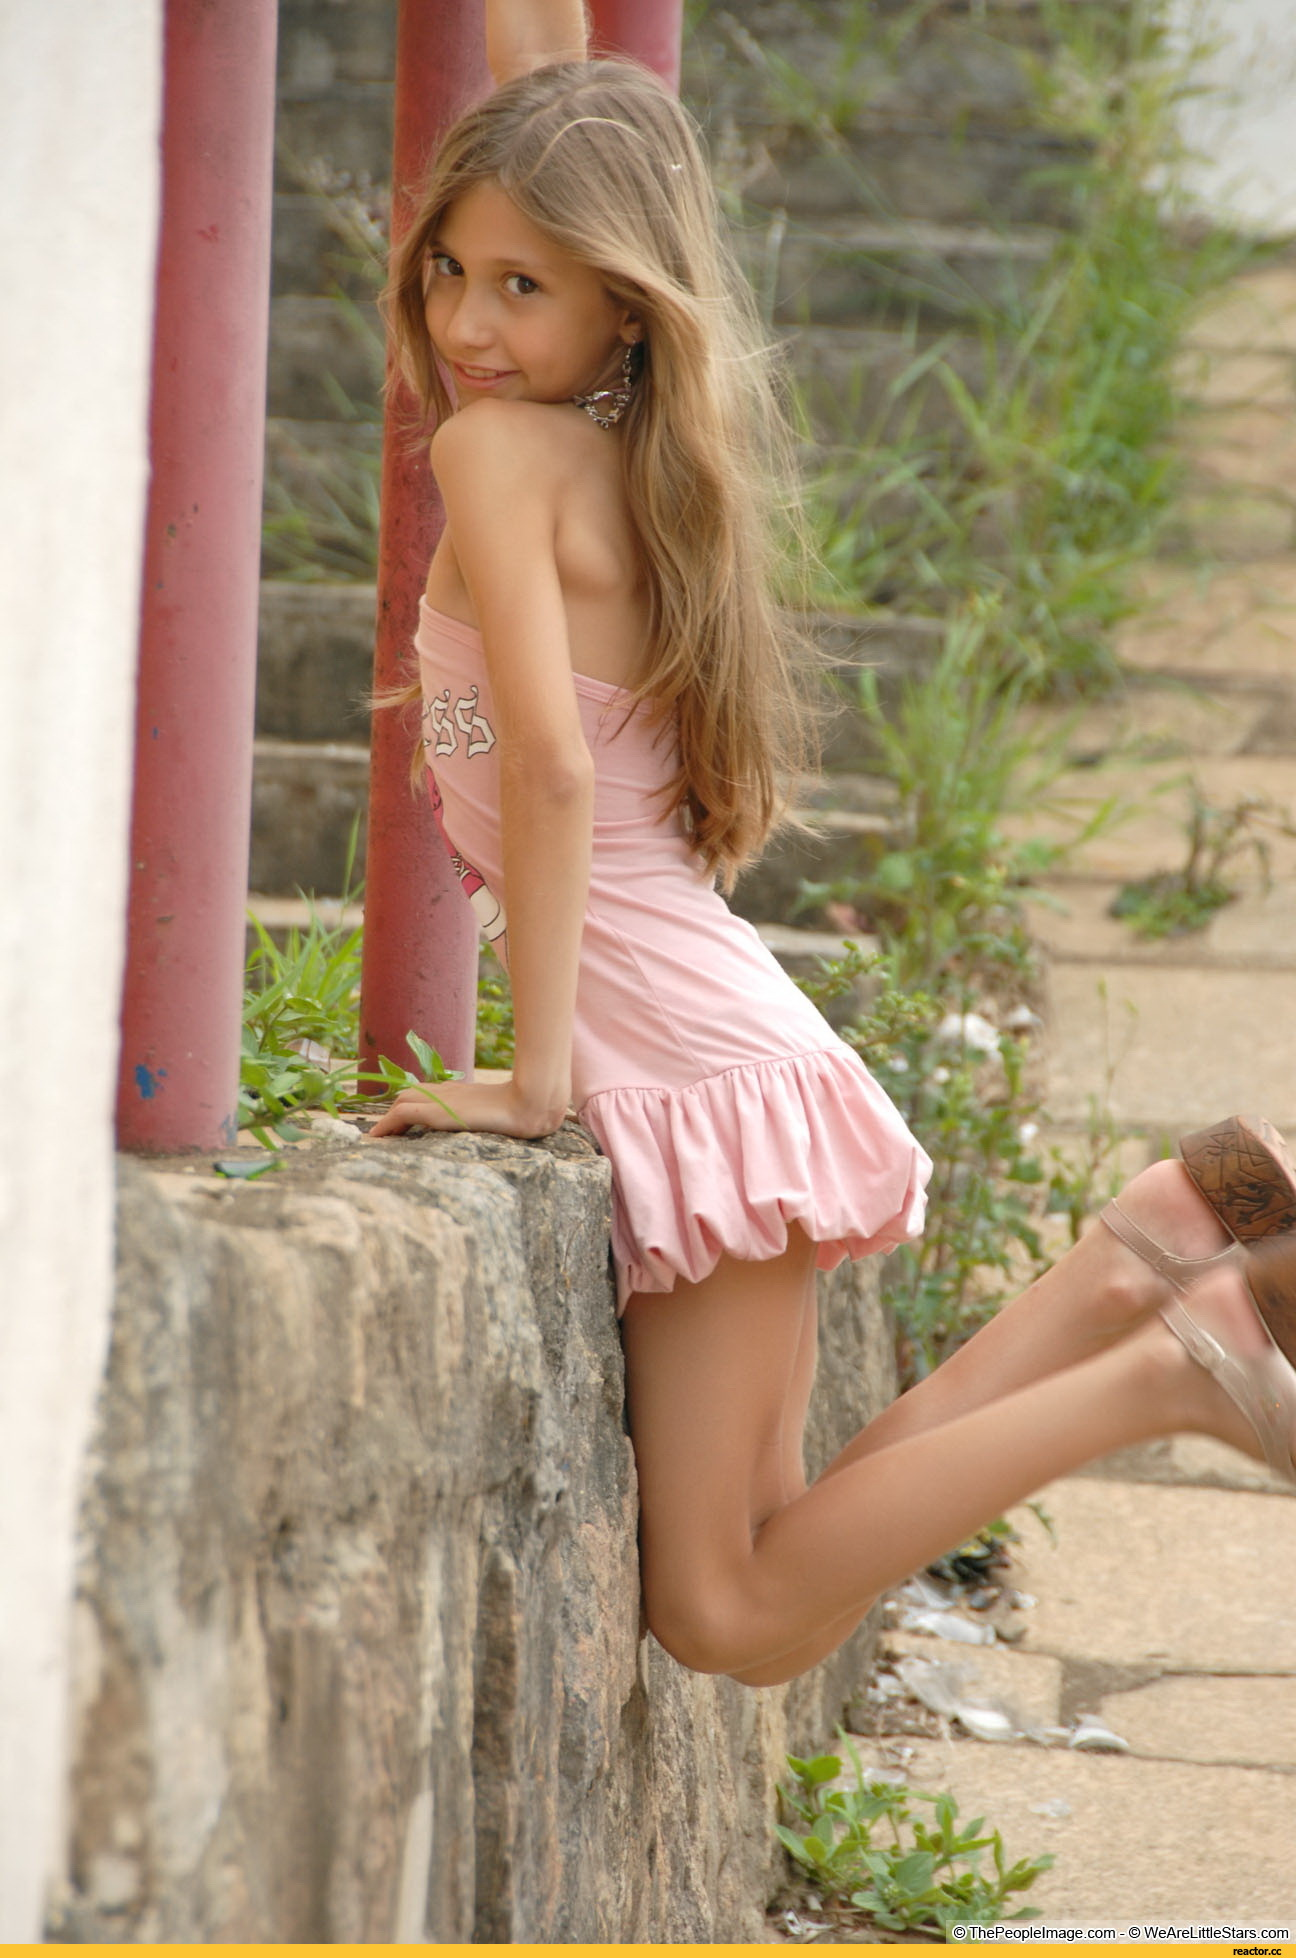 Arhivach Young Girls | Sexy Girl And Car Photos